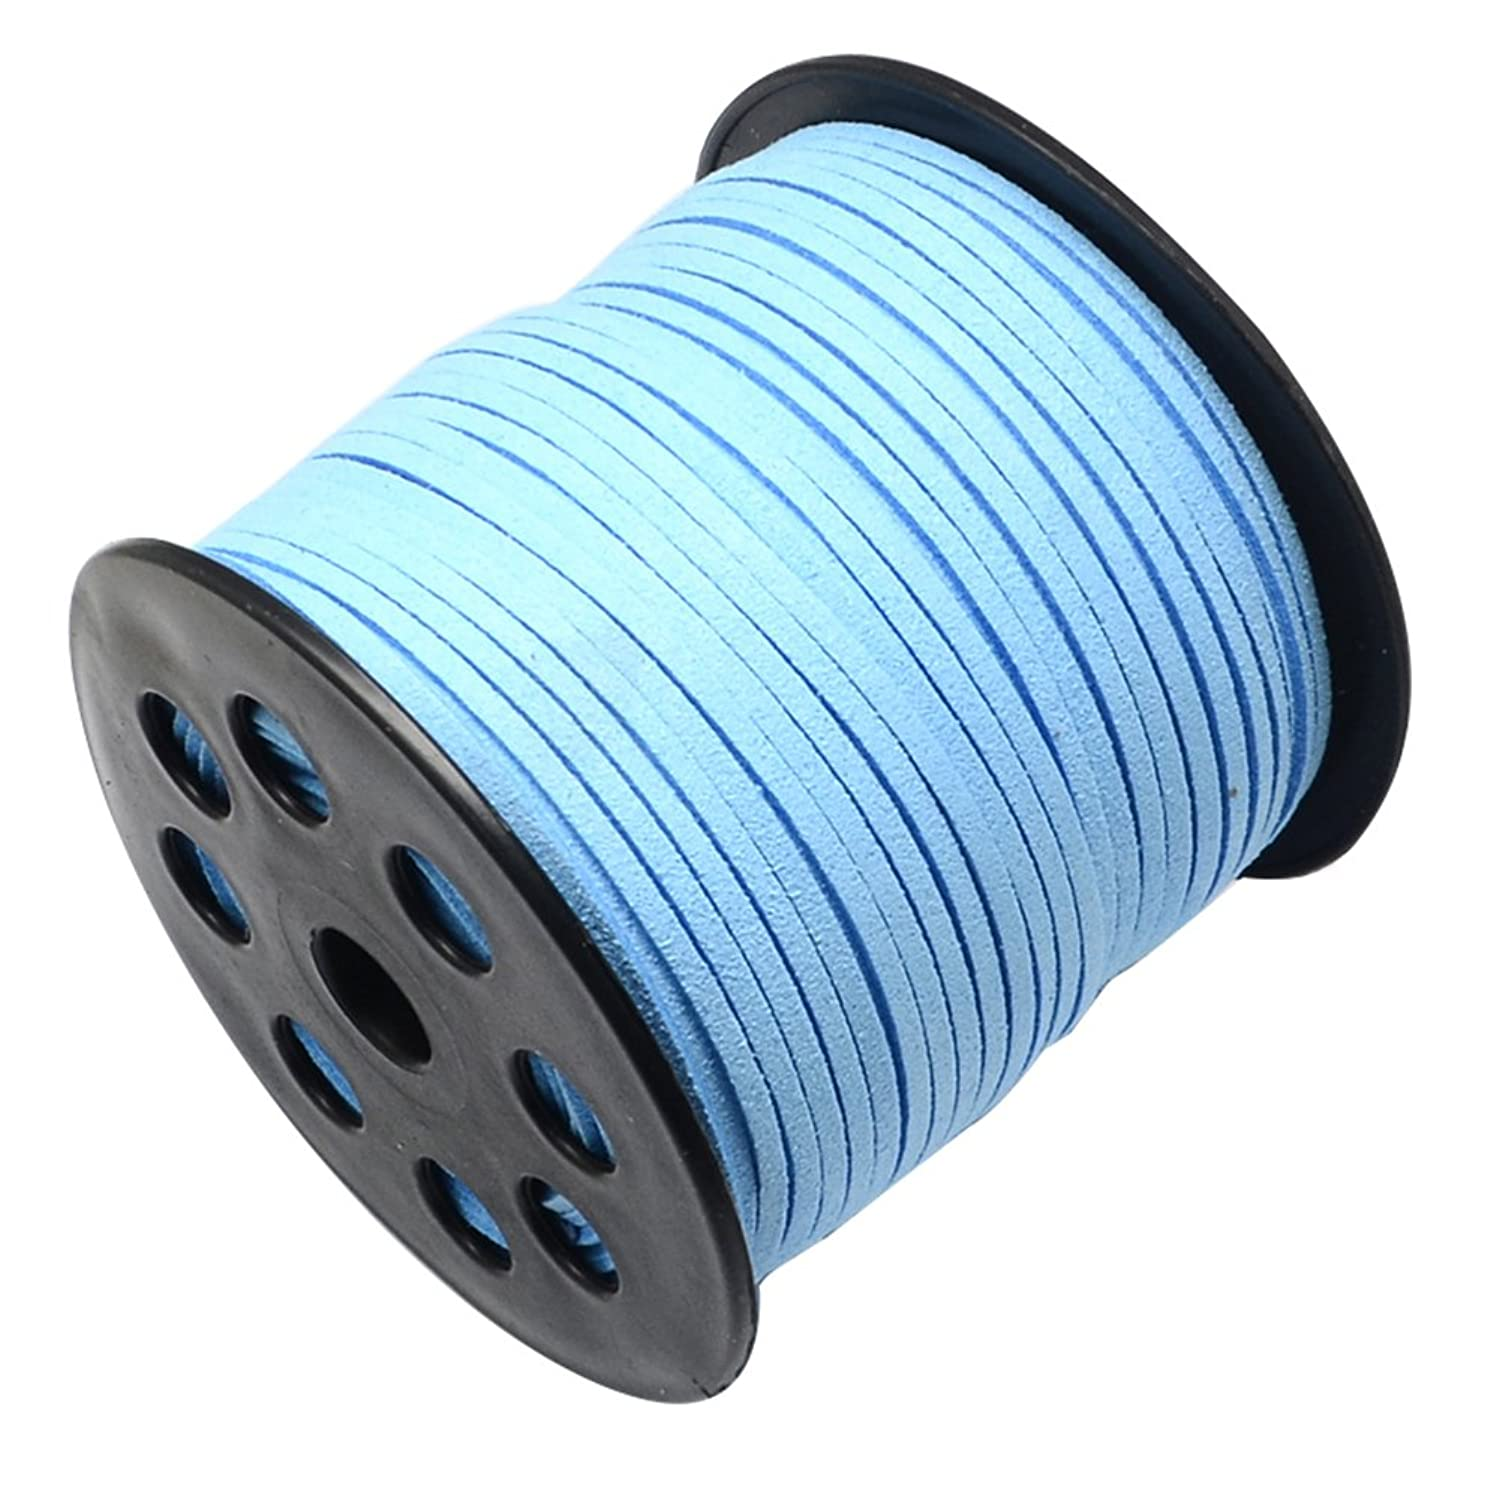 NBEADS 3mm 98 Yards/Roll Light Sky Blue Color of Micro Fiber Lace Flat Environmental Faux Suede Leather Cord Beading Thread Cords Braiding String for Jewelry Making